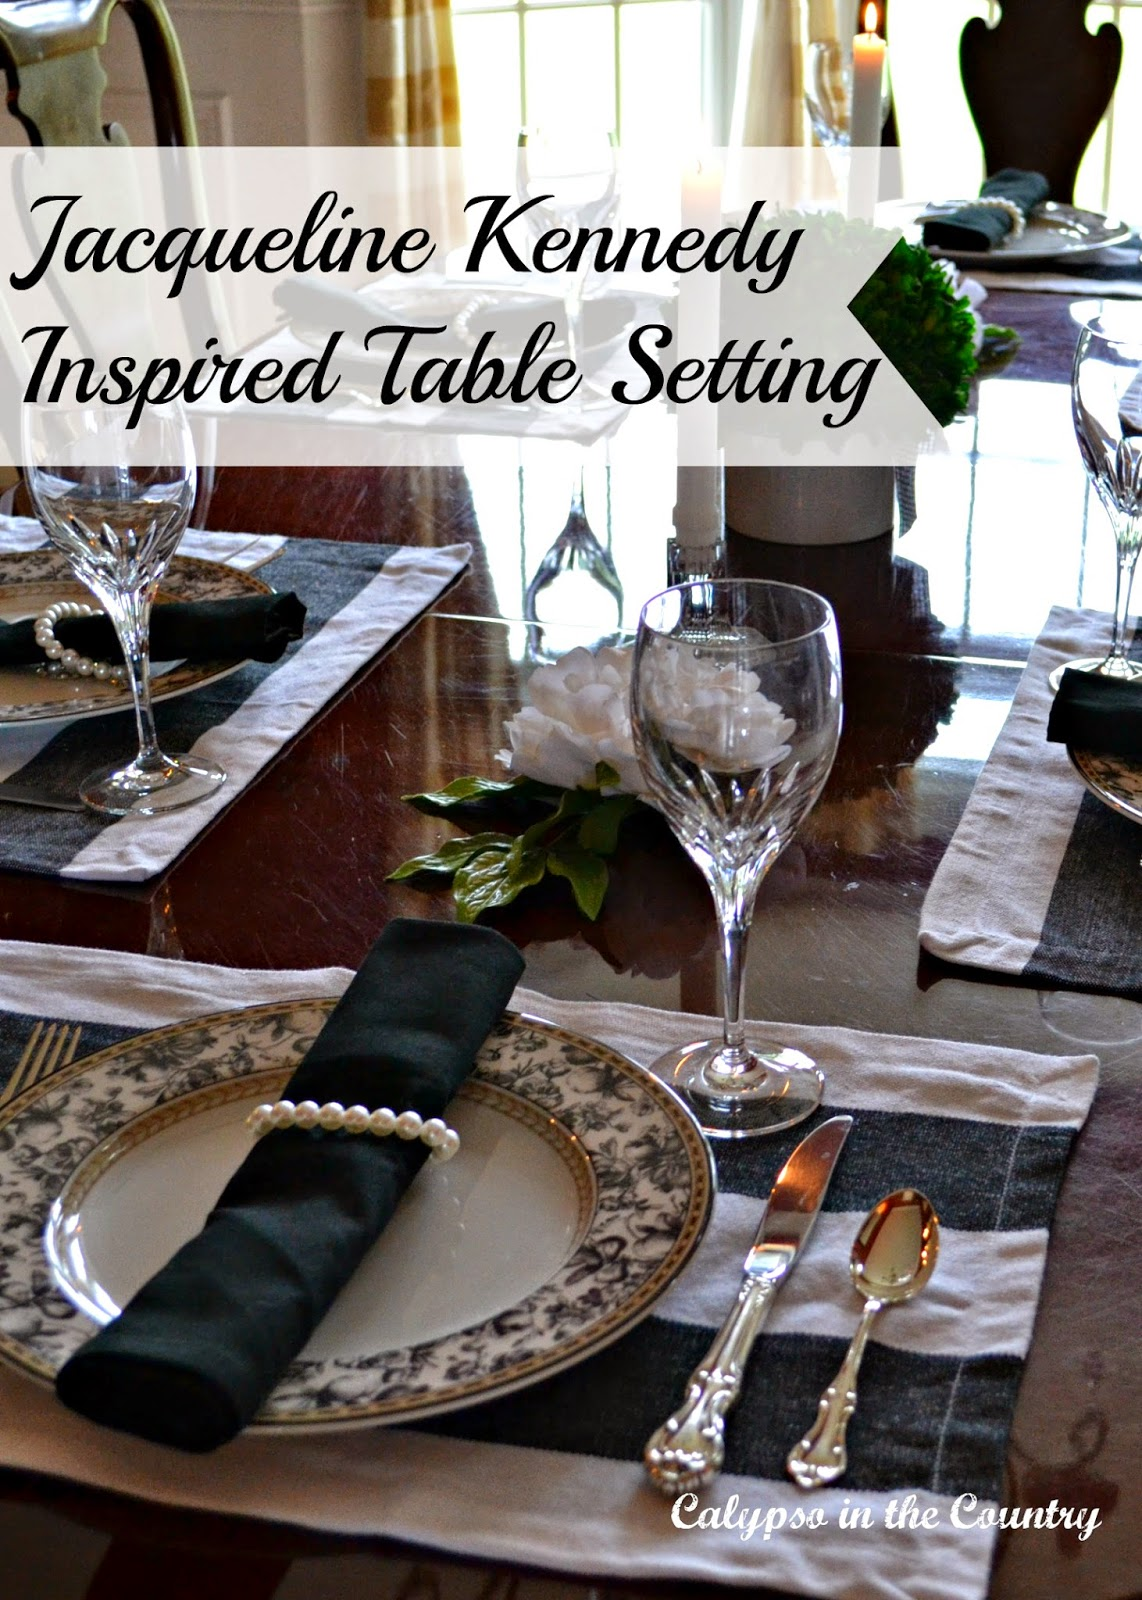 Jacqueline Kennedy Inspired Table Setting